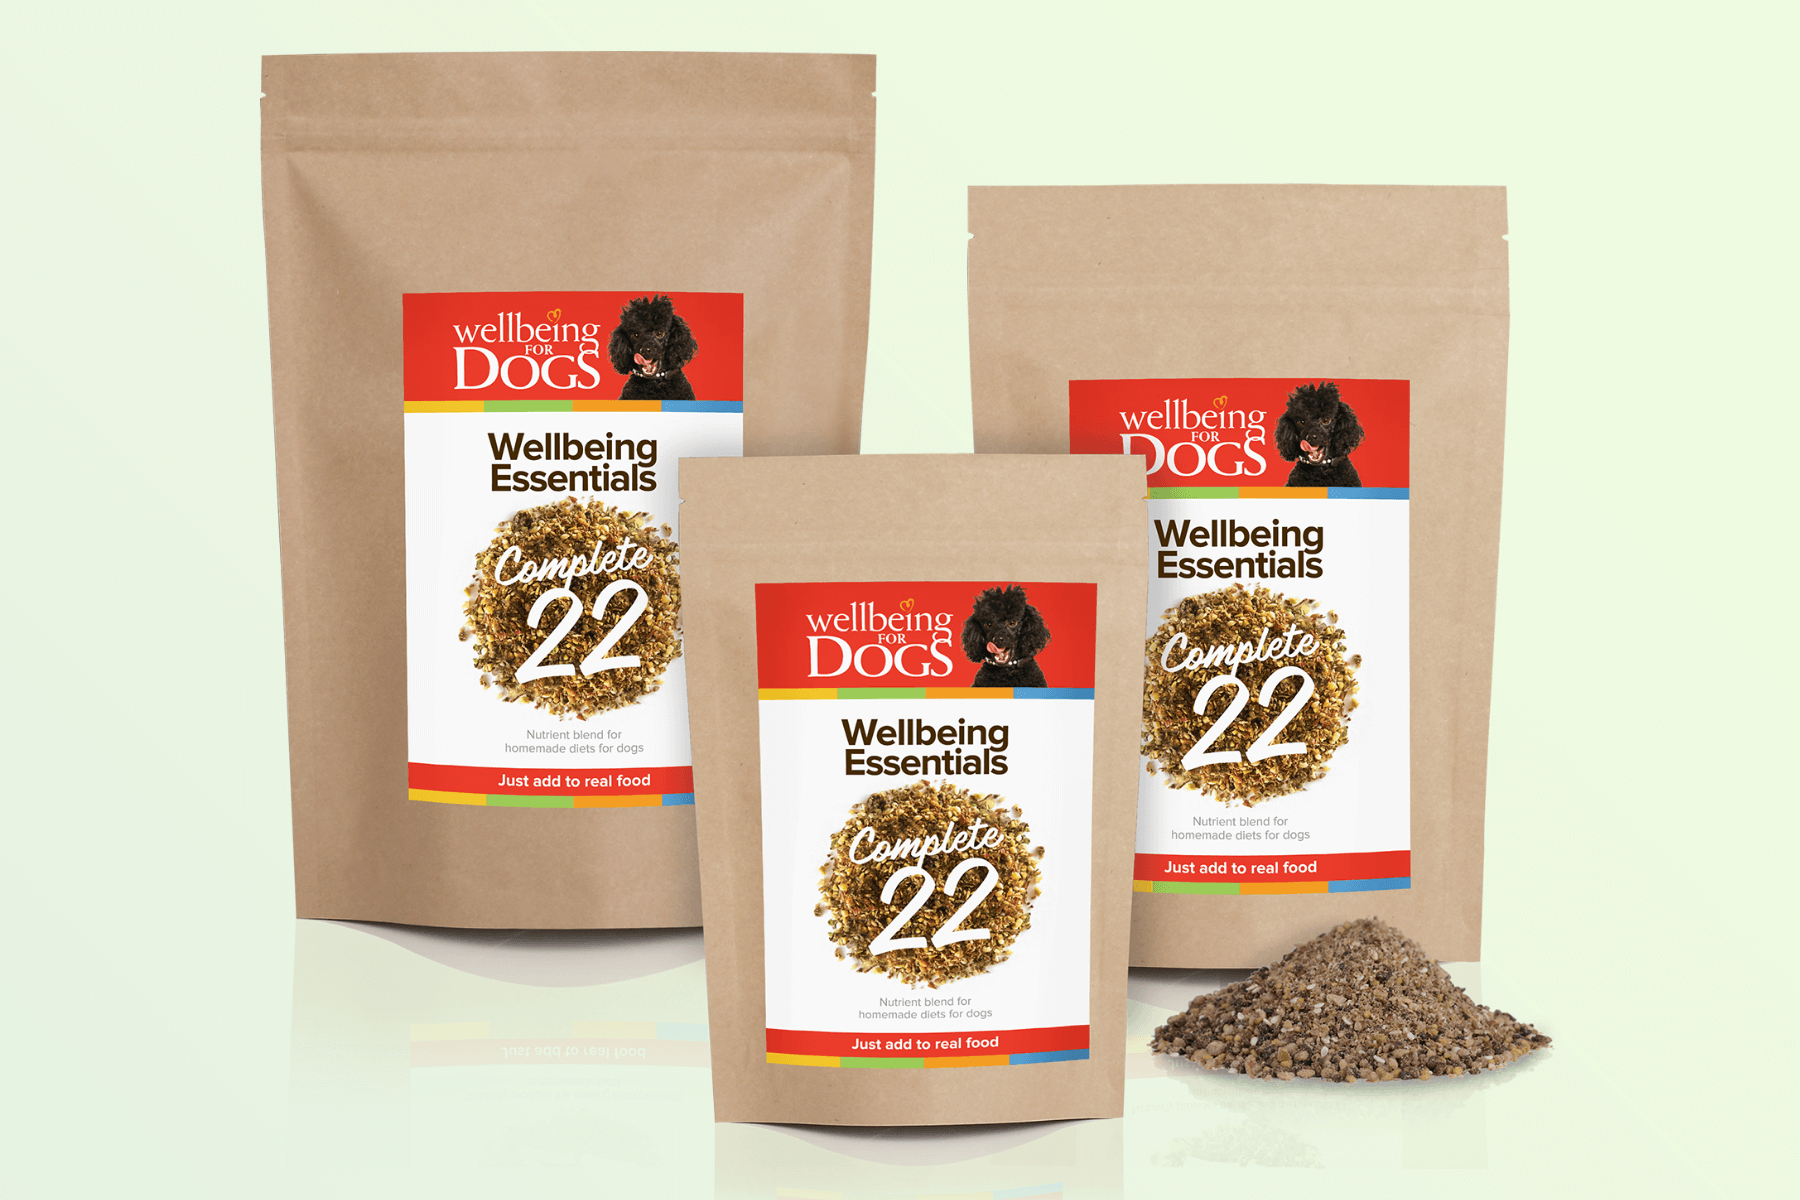 Various pack sizes of Wellbeing Essentials Complete 22 Wellbeing for Dogs